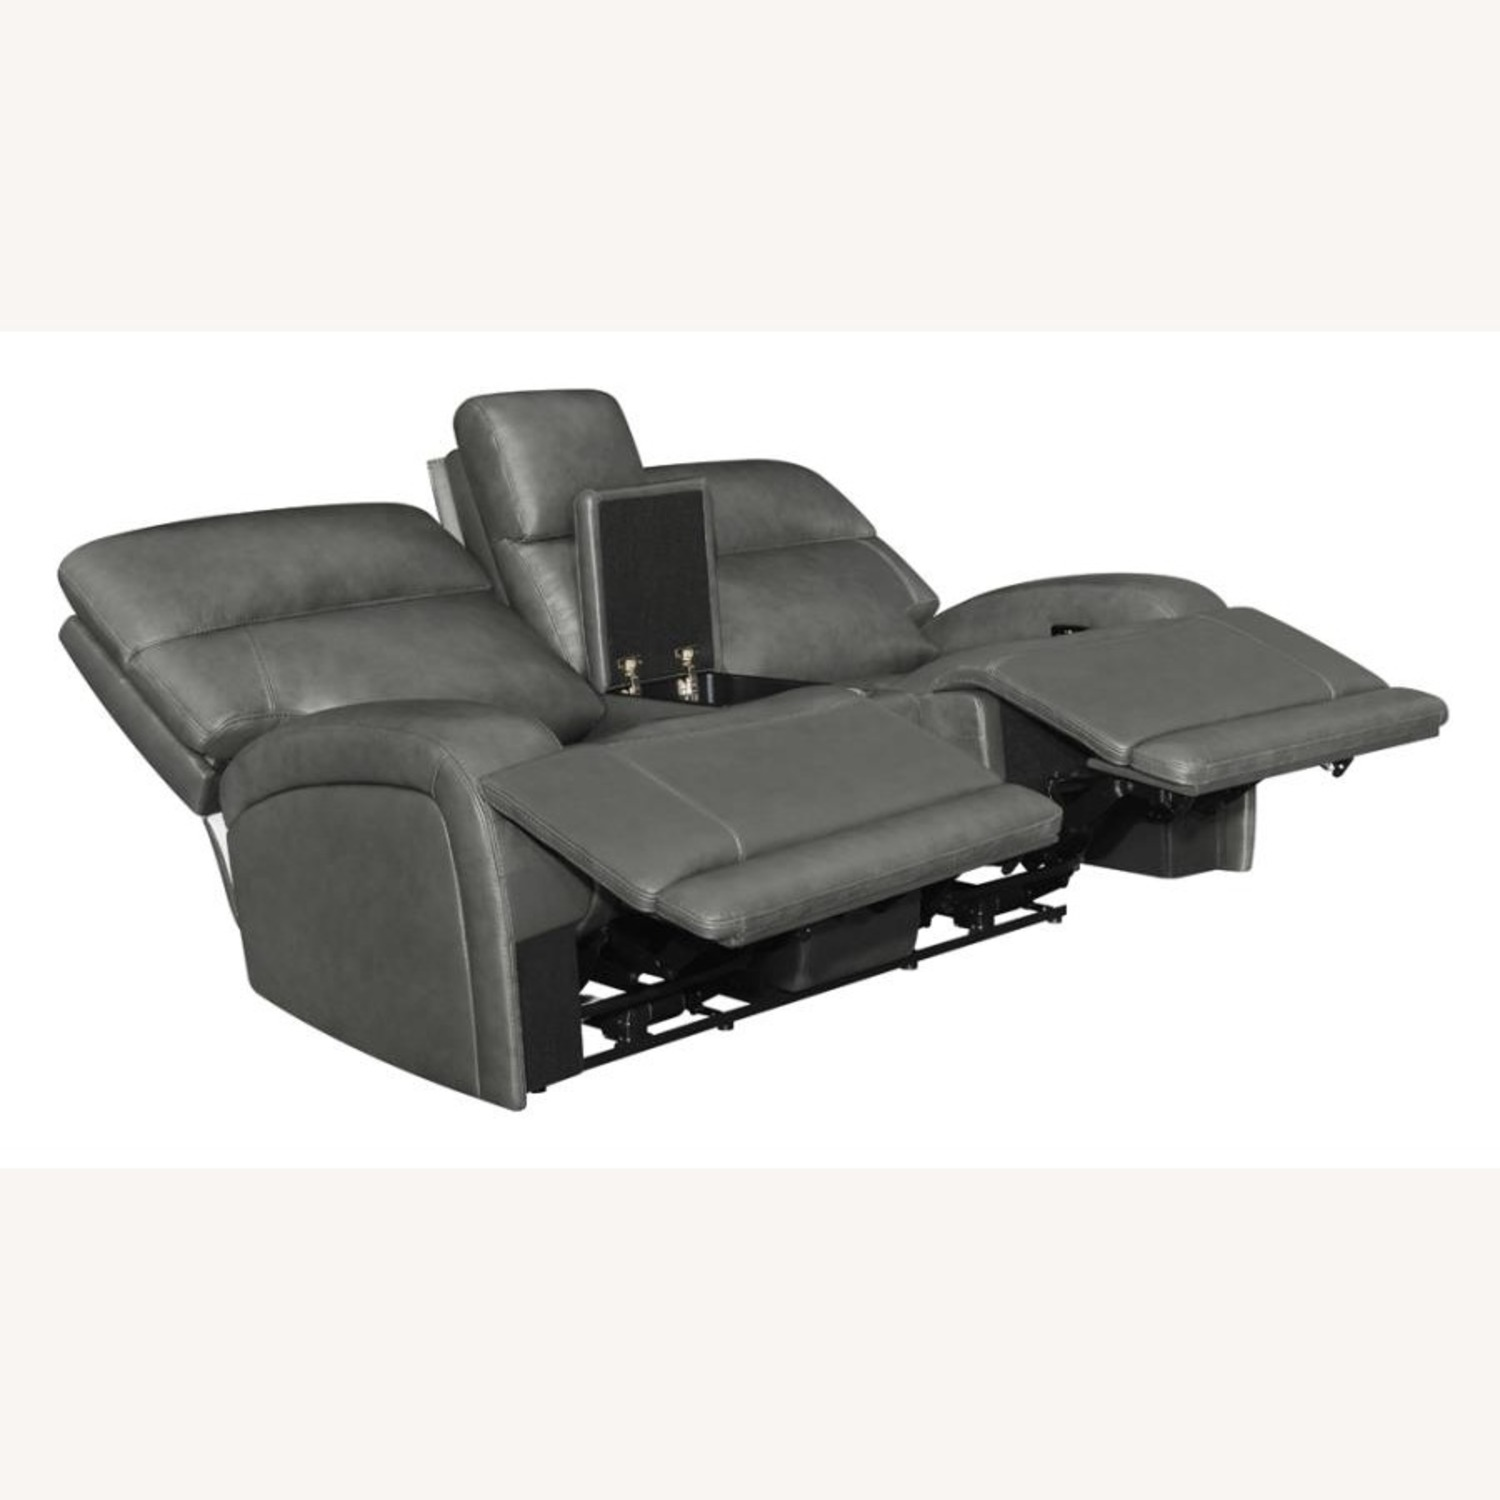 Power Loveseat W/ Console In Charcoal Leatherette - image-1